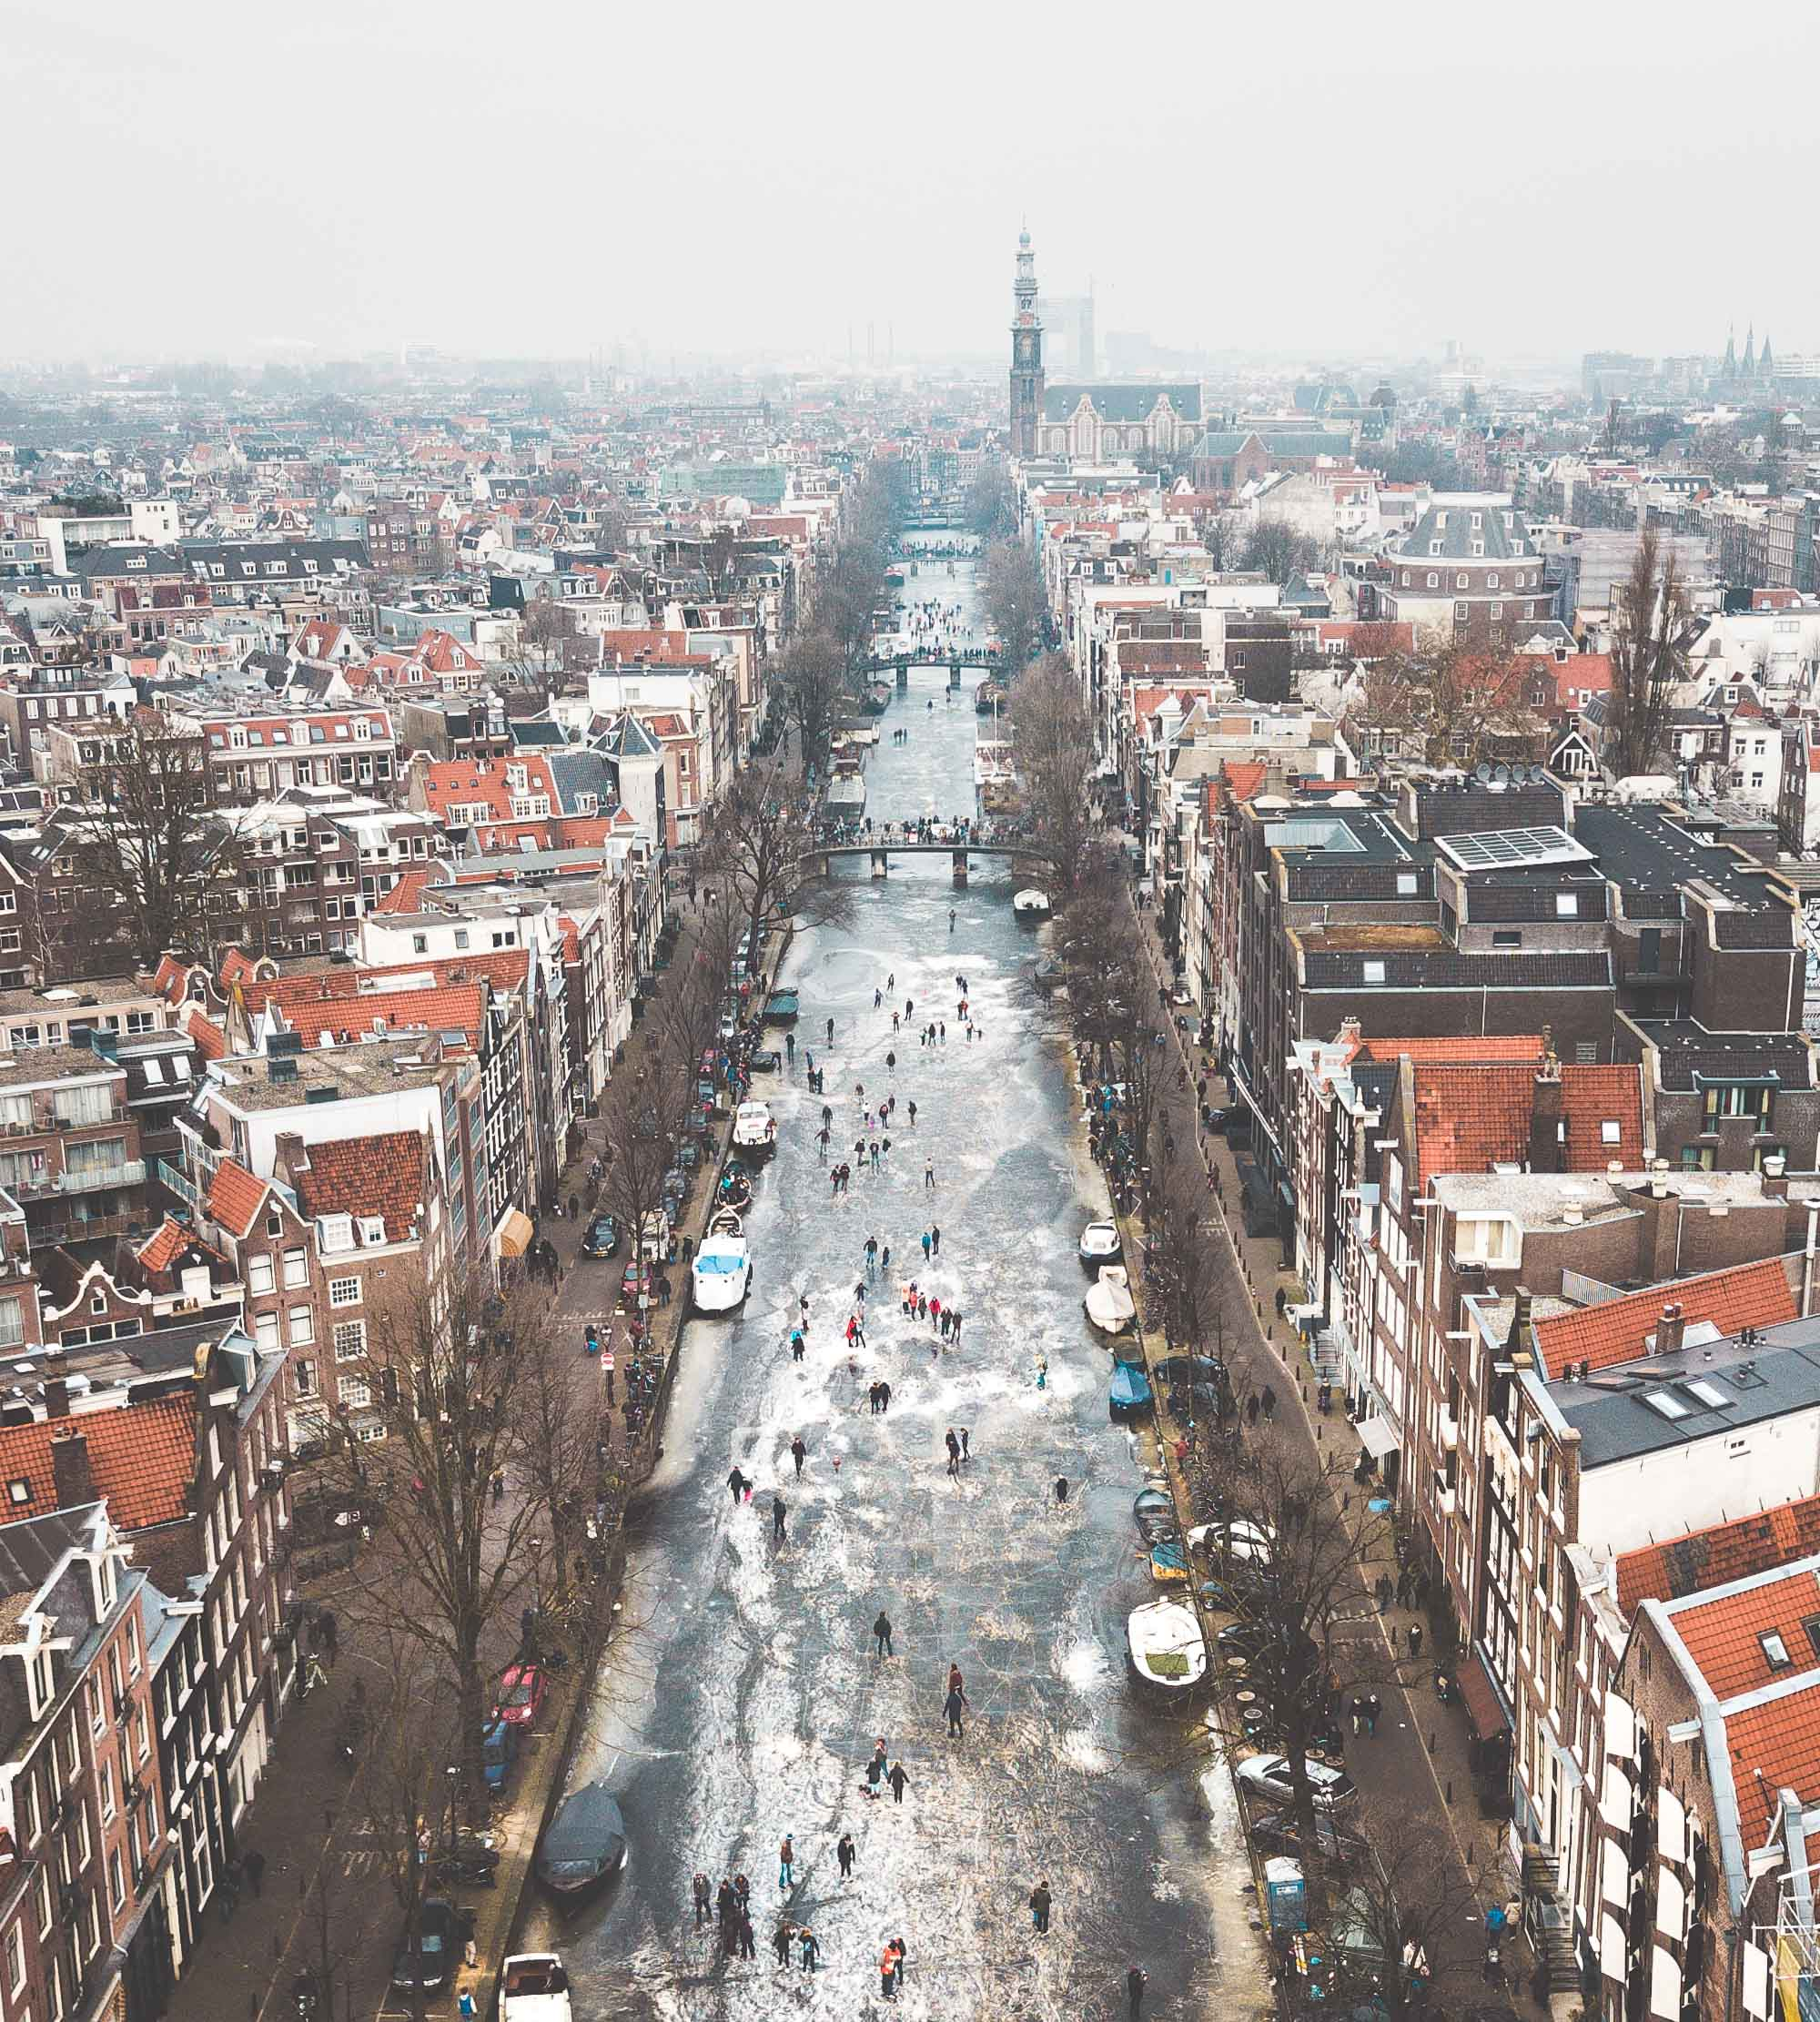 Overhead view of ice skaters on the frozen canals in Amsterdam The Netherlands